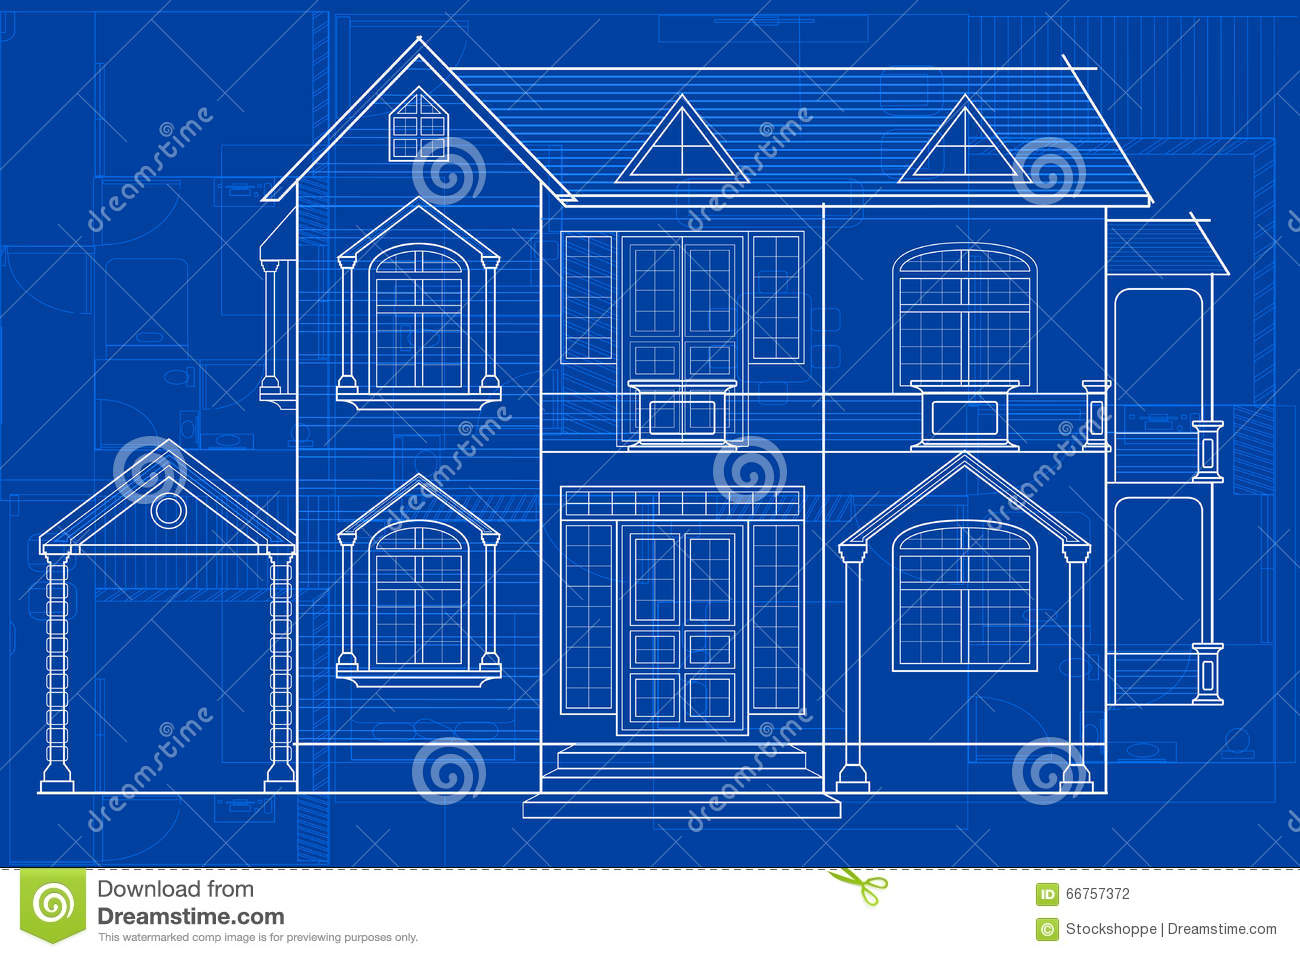 Blueprint of building stock vector illustration of construction blueprint of building construction digital malvernweather